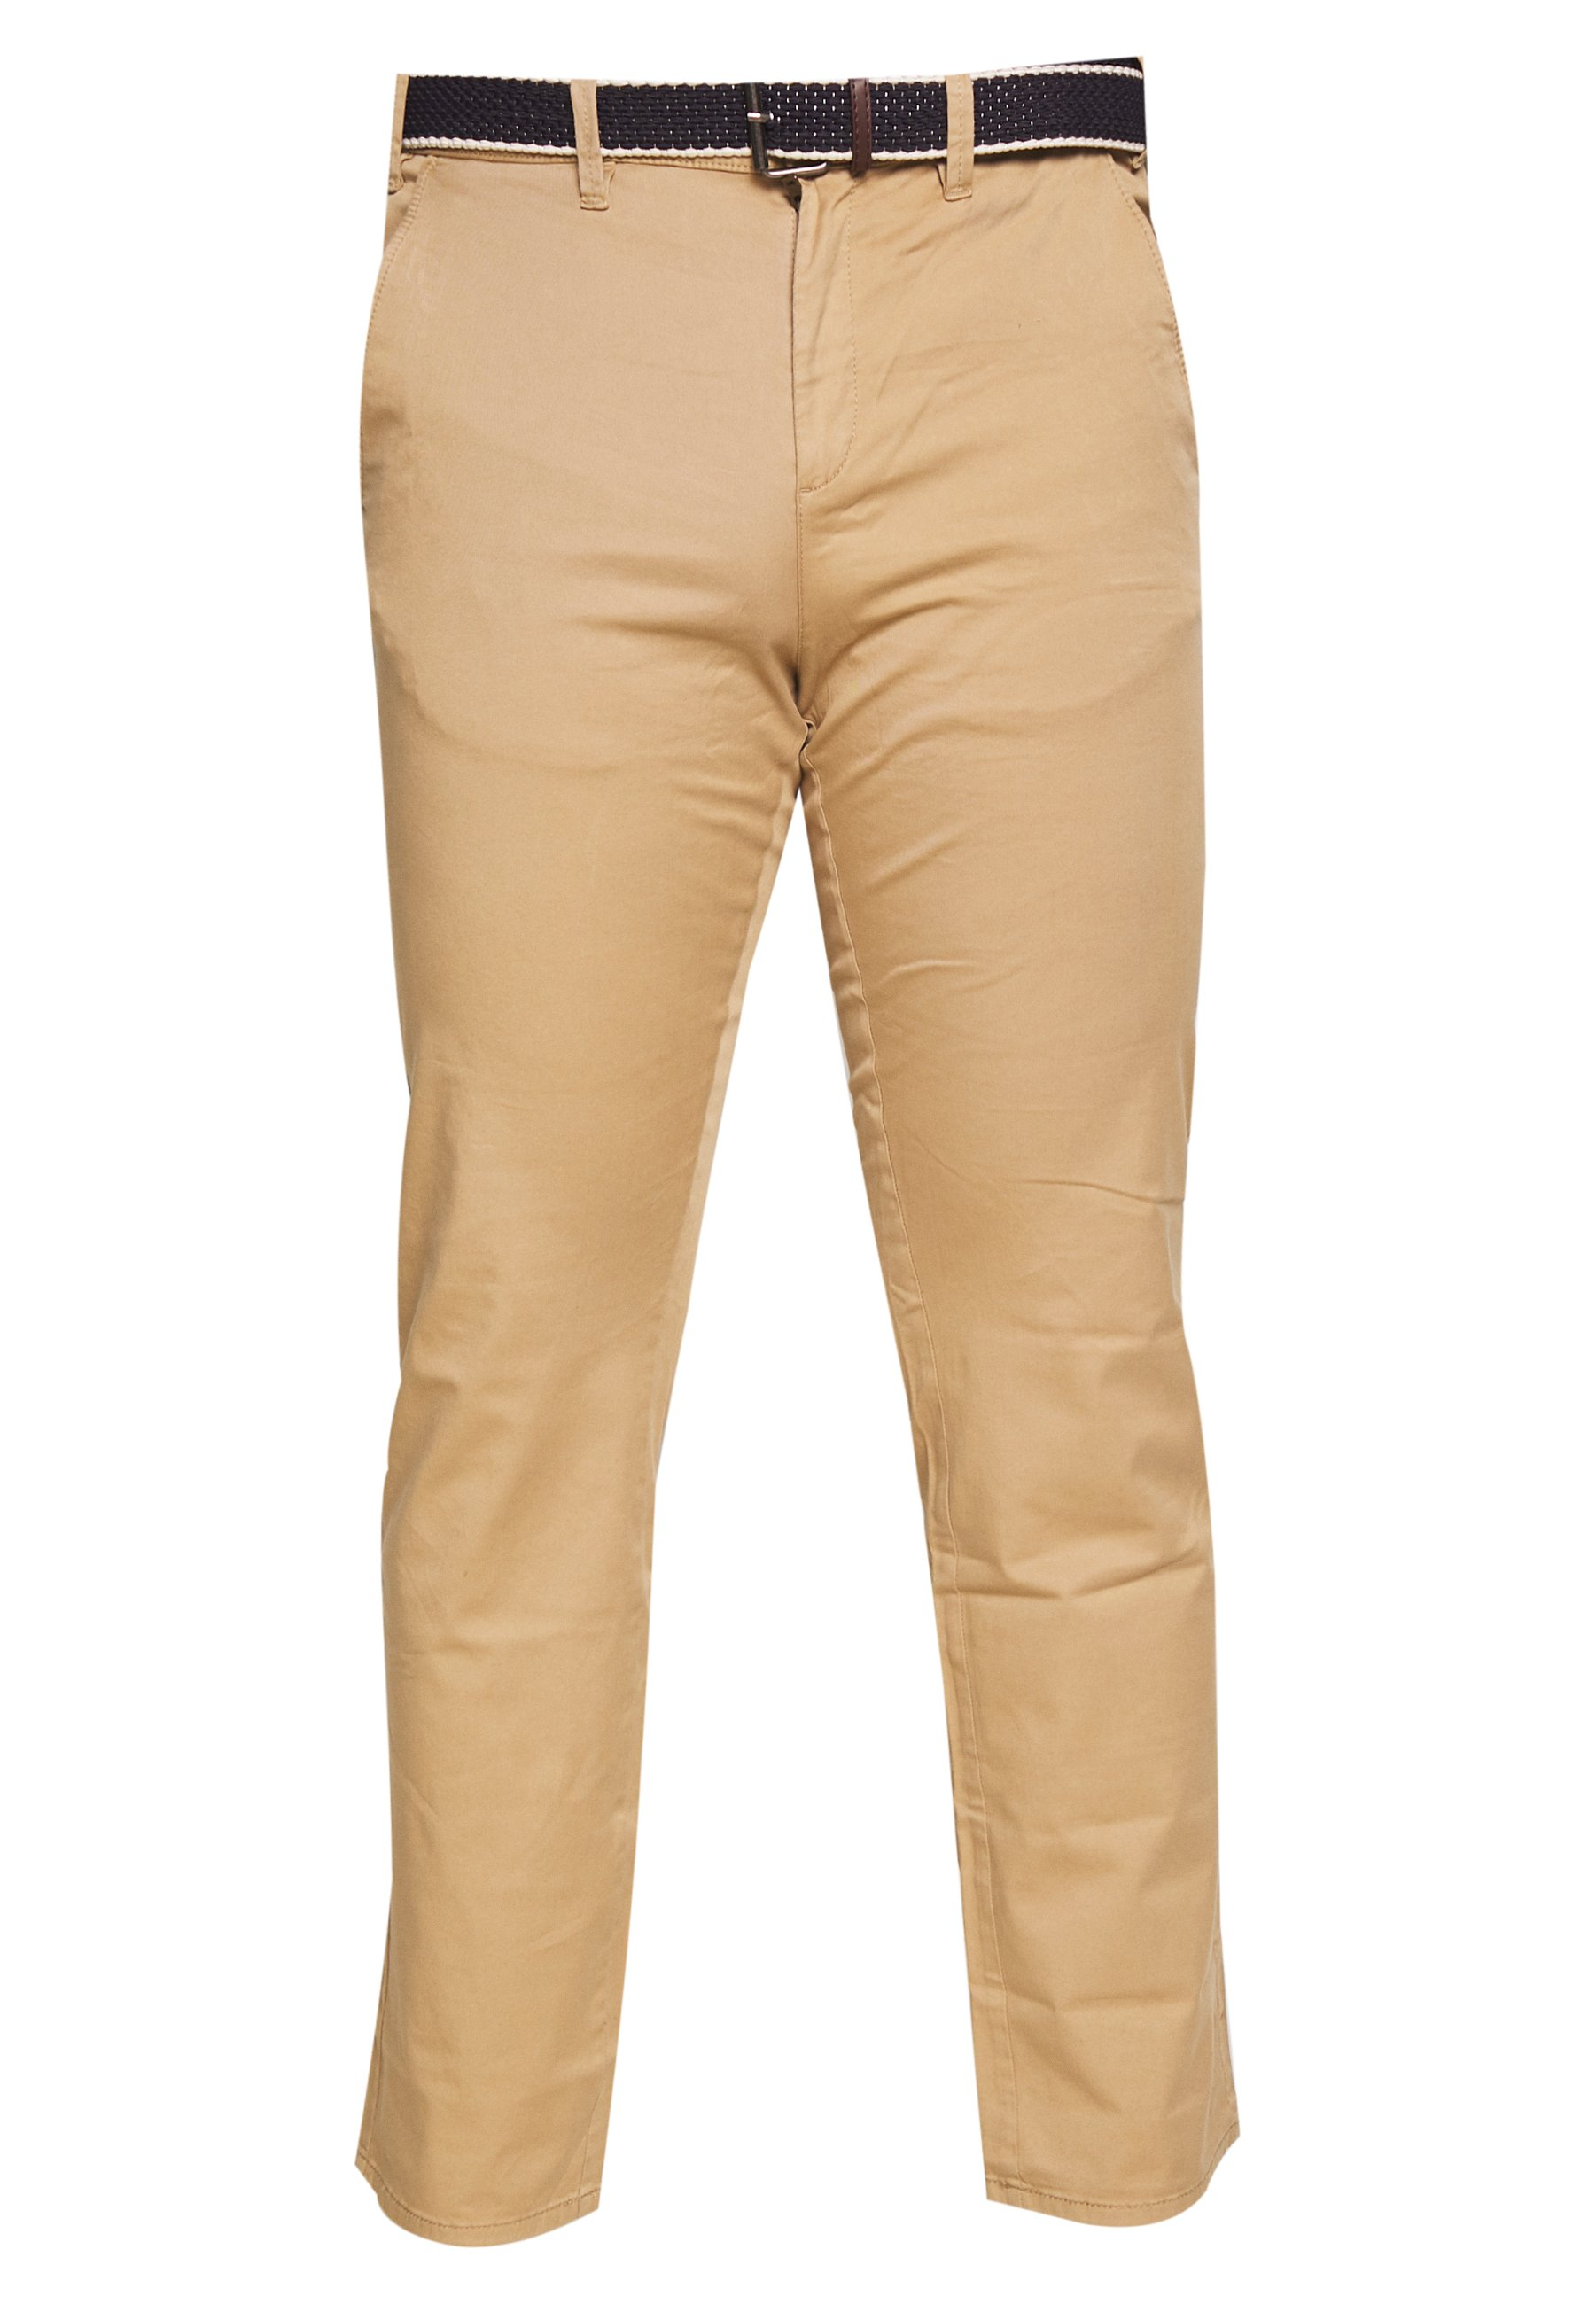 S.oliver Chinos - Steel Blue